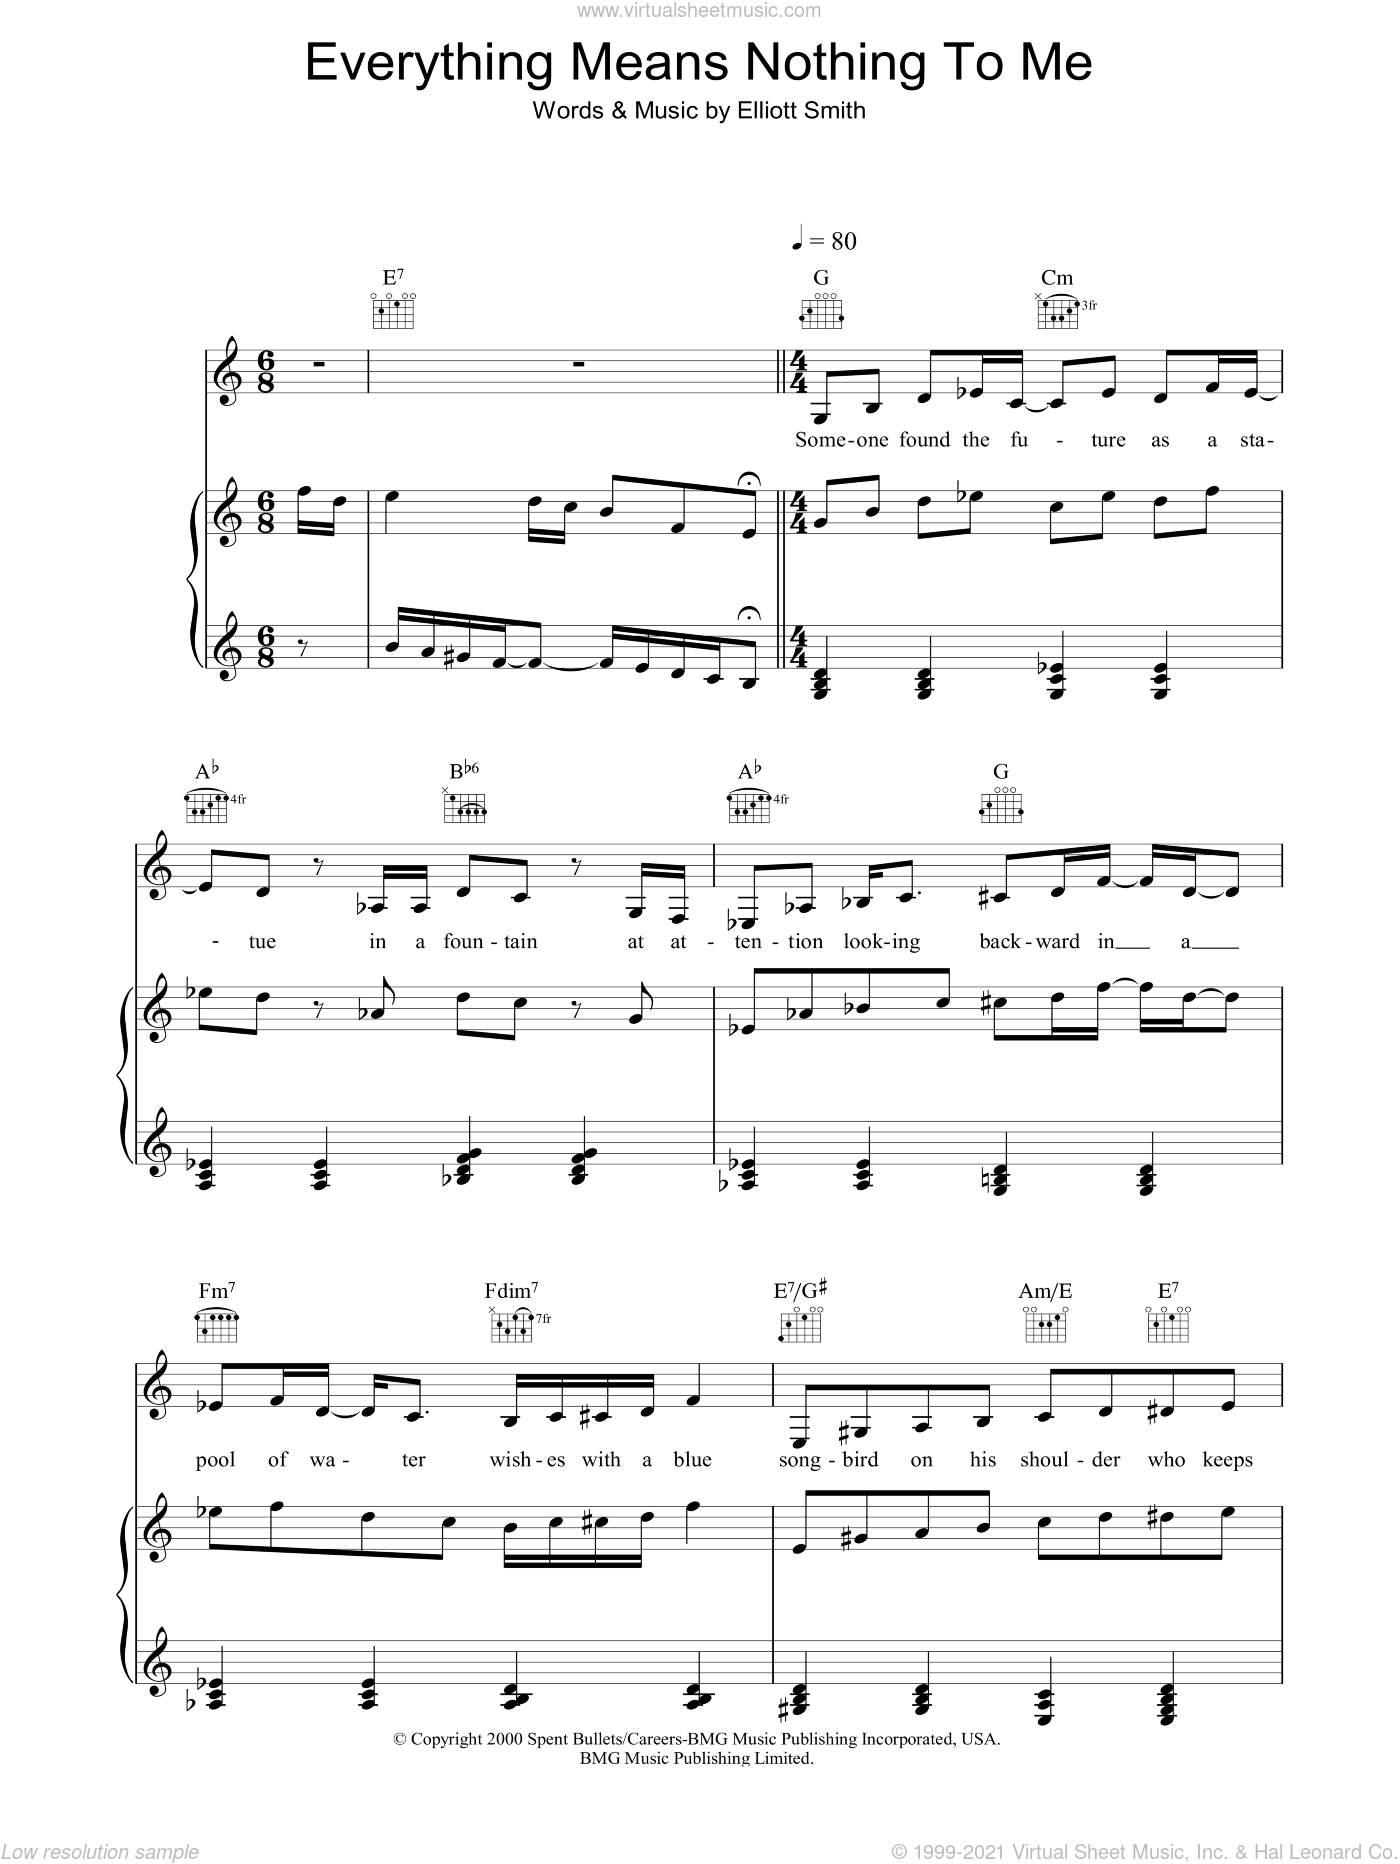 Everything Means Nothing To Me sheet music for voice, piano or guitar by Elliott Smith